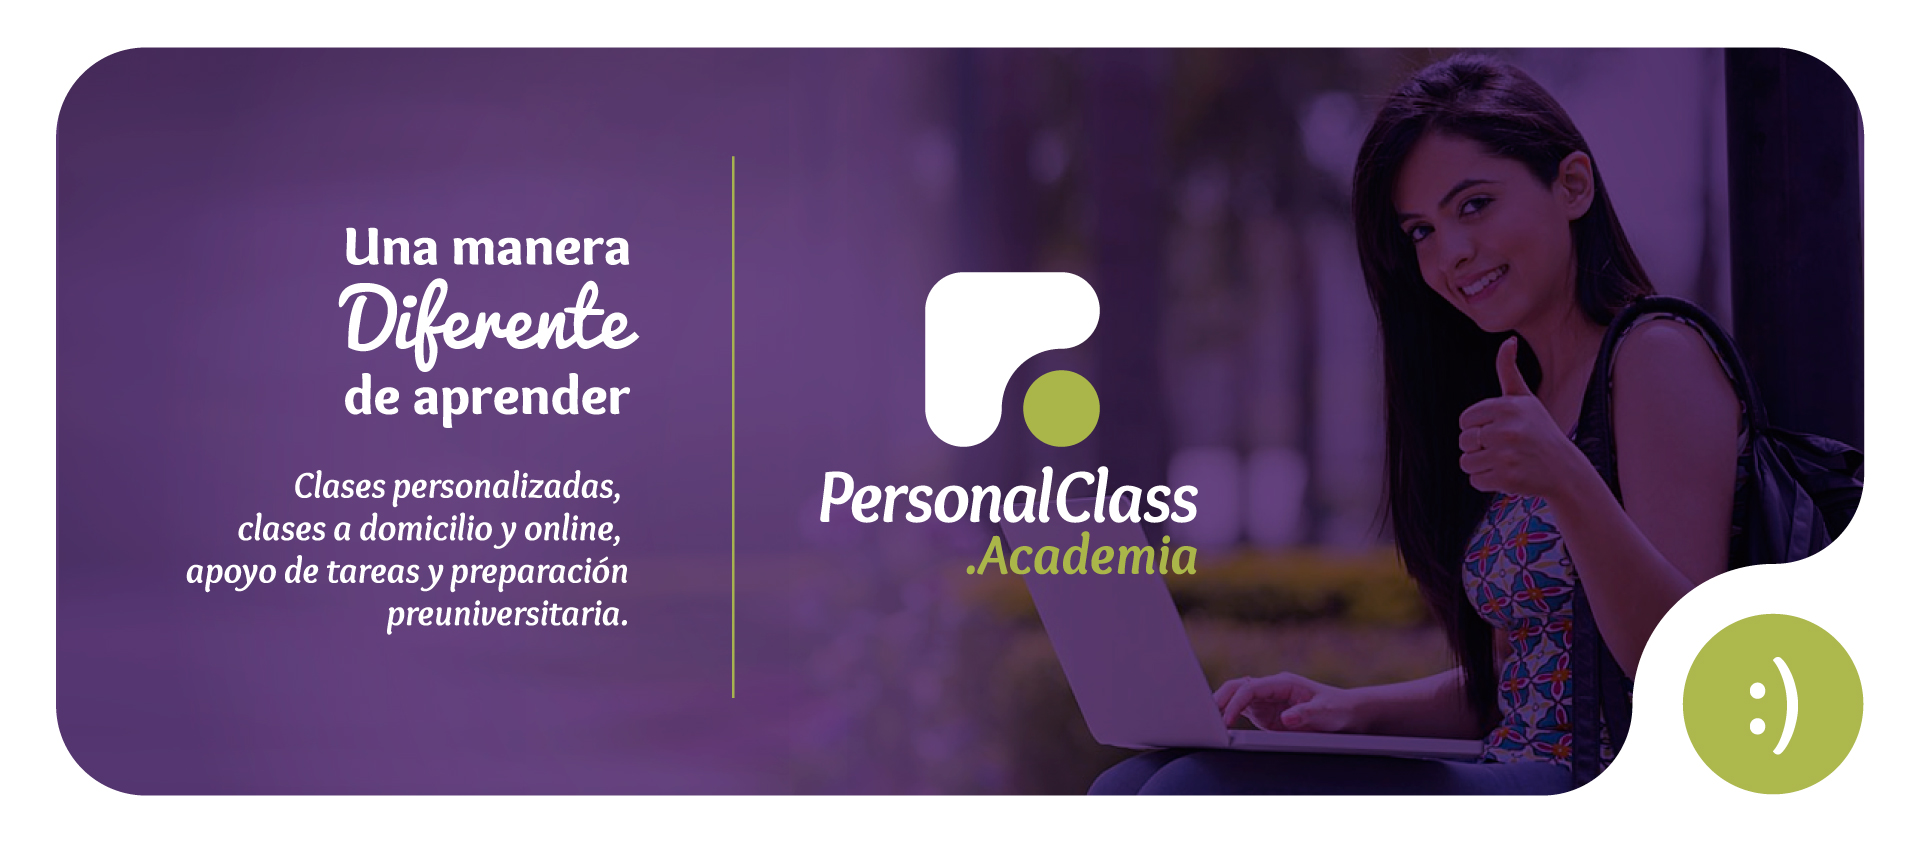 personal class academia